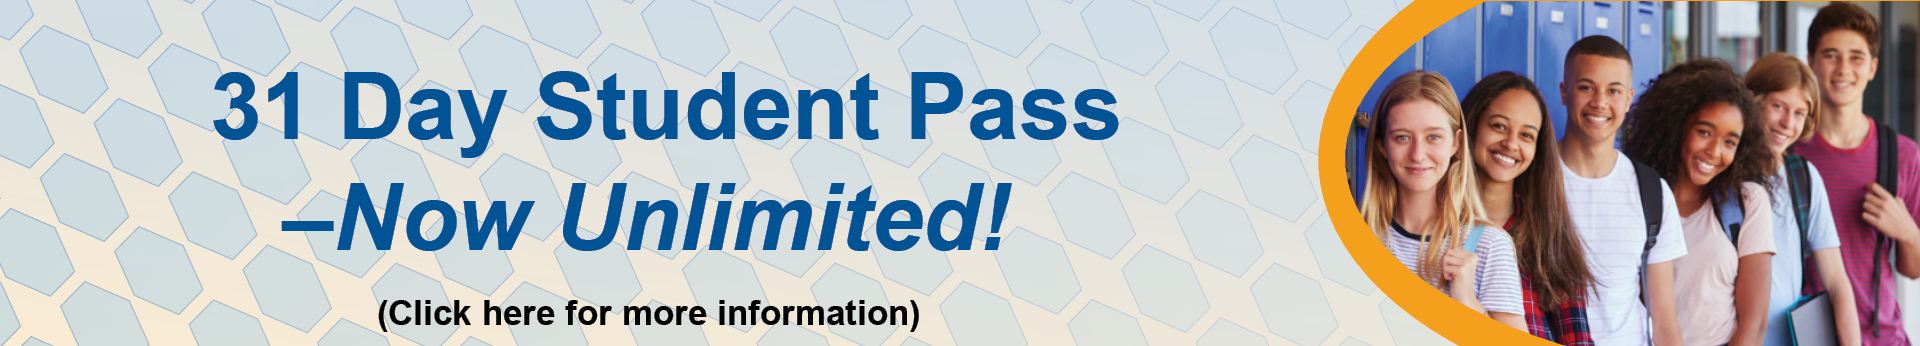 31 Day Student Pass is now unlimited. Click here for more information.